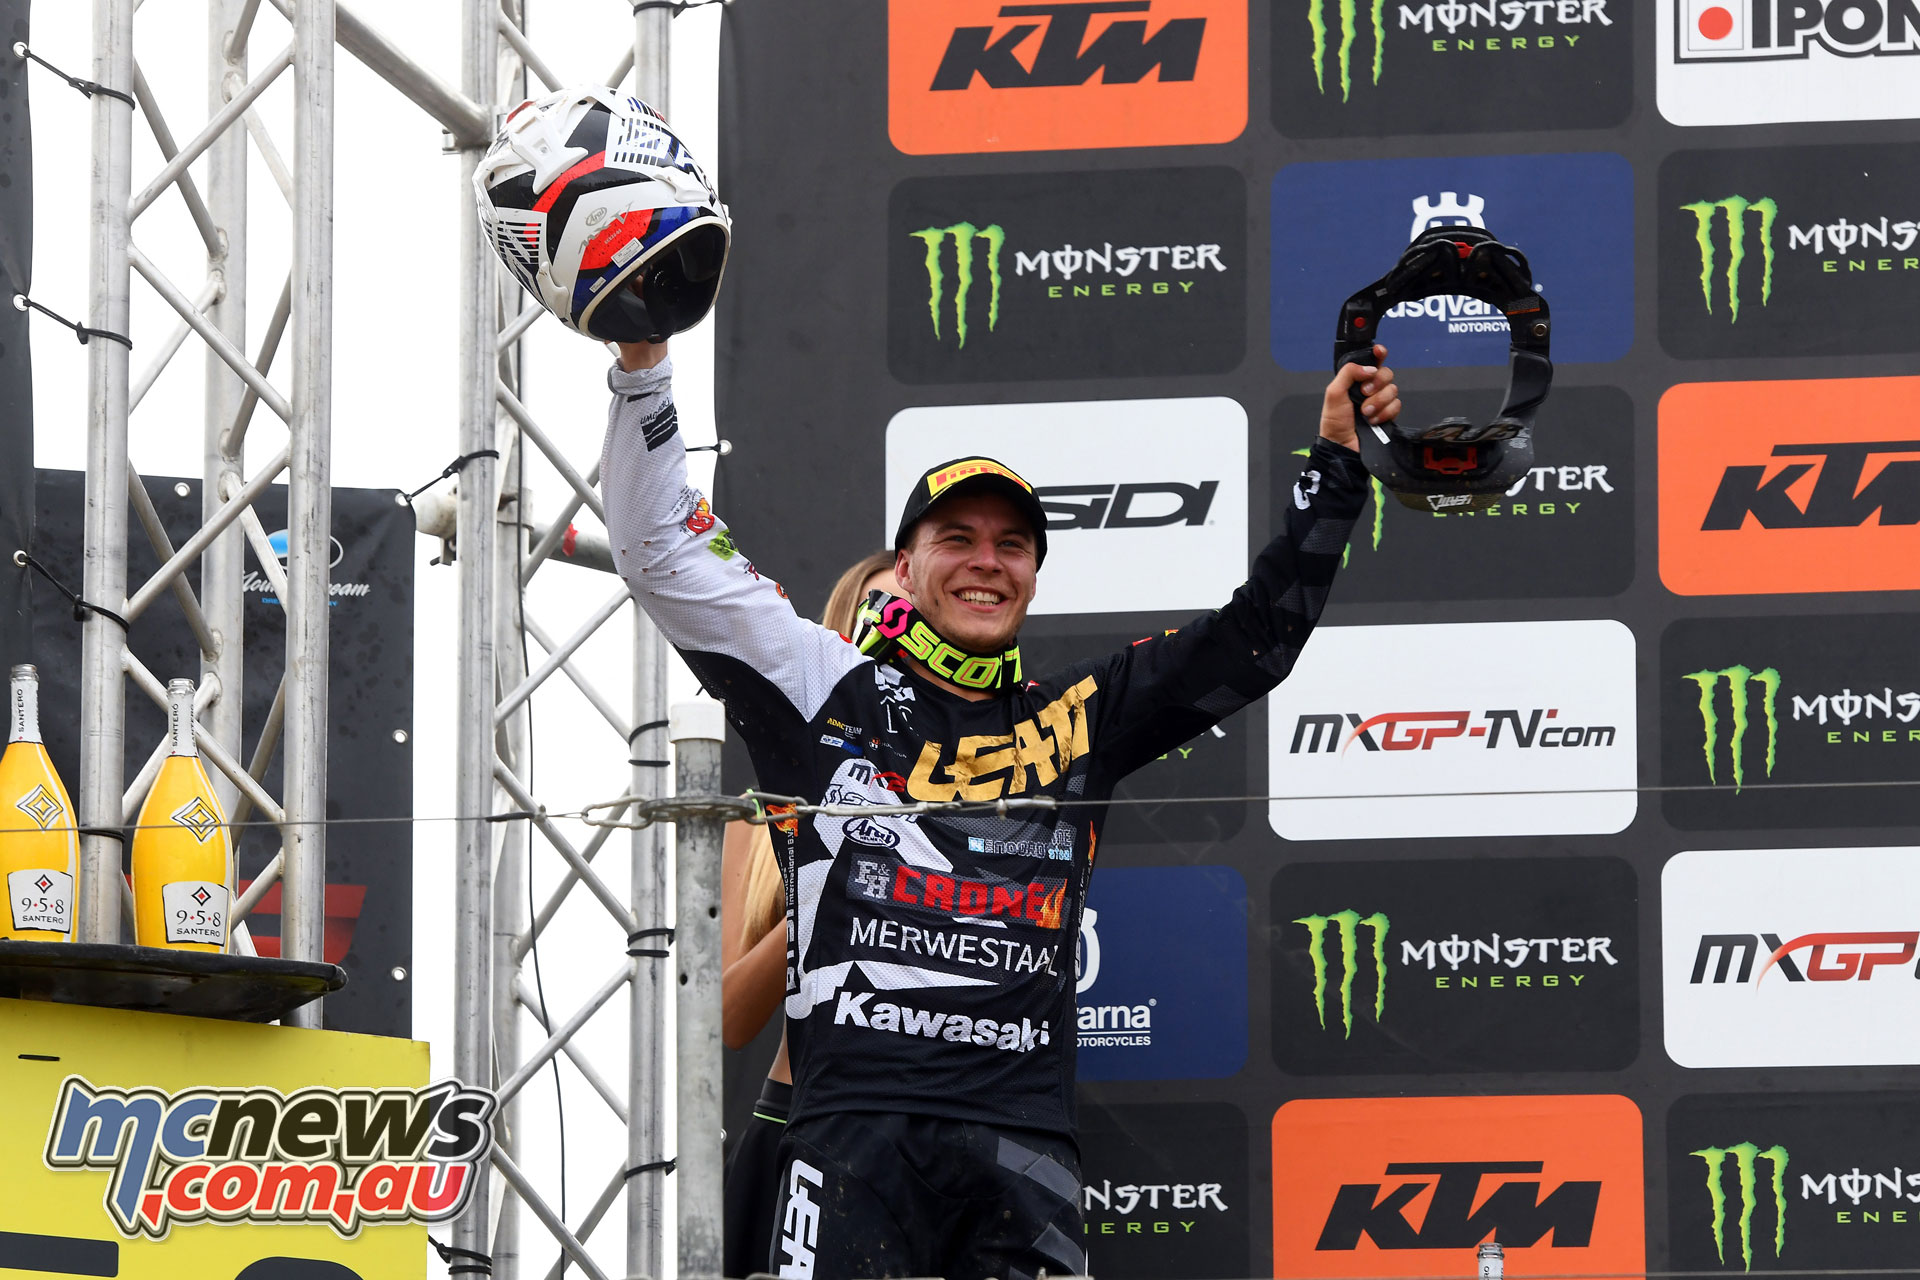 MXGP Rnd Czech Loket MX Jacobi podium